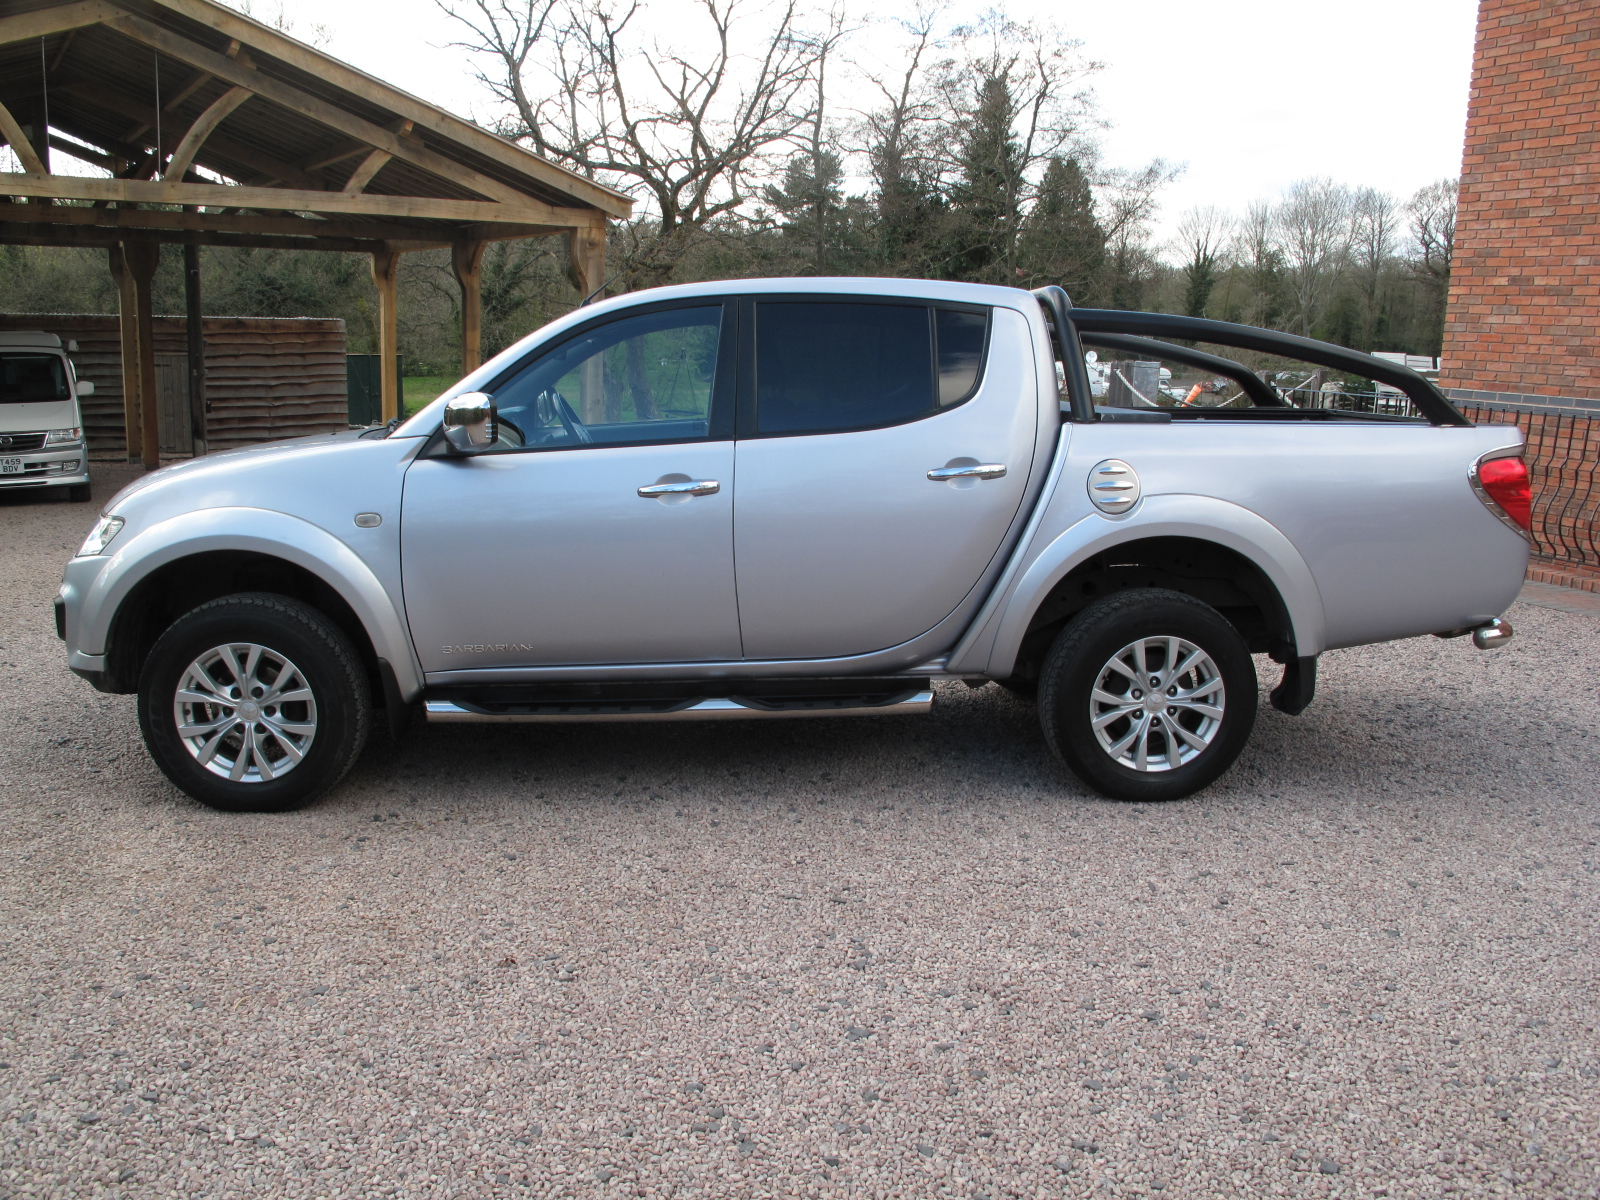 2014 64 Mitsubishi L200 2.5 DI-D CR Barbarian Double Cab Pickup 4WD TOP OF THE RANGE! ONLY USED AS A CAR! IMMACULATE! NO VAT! full